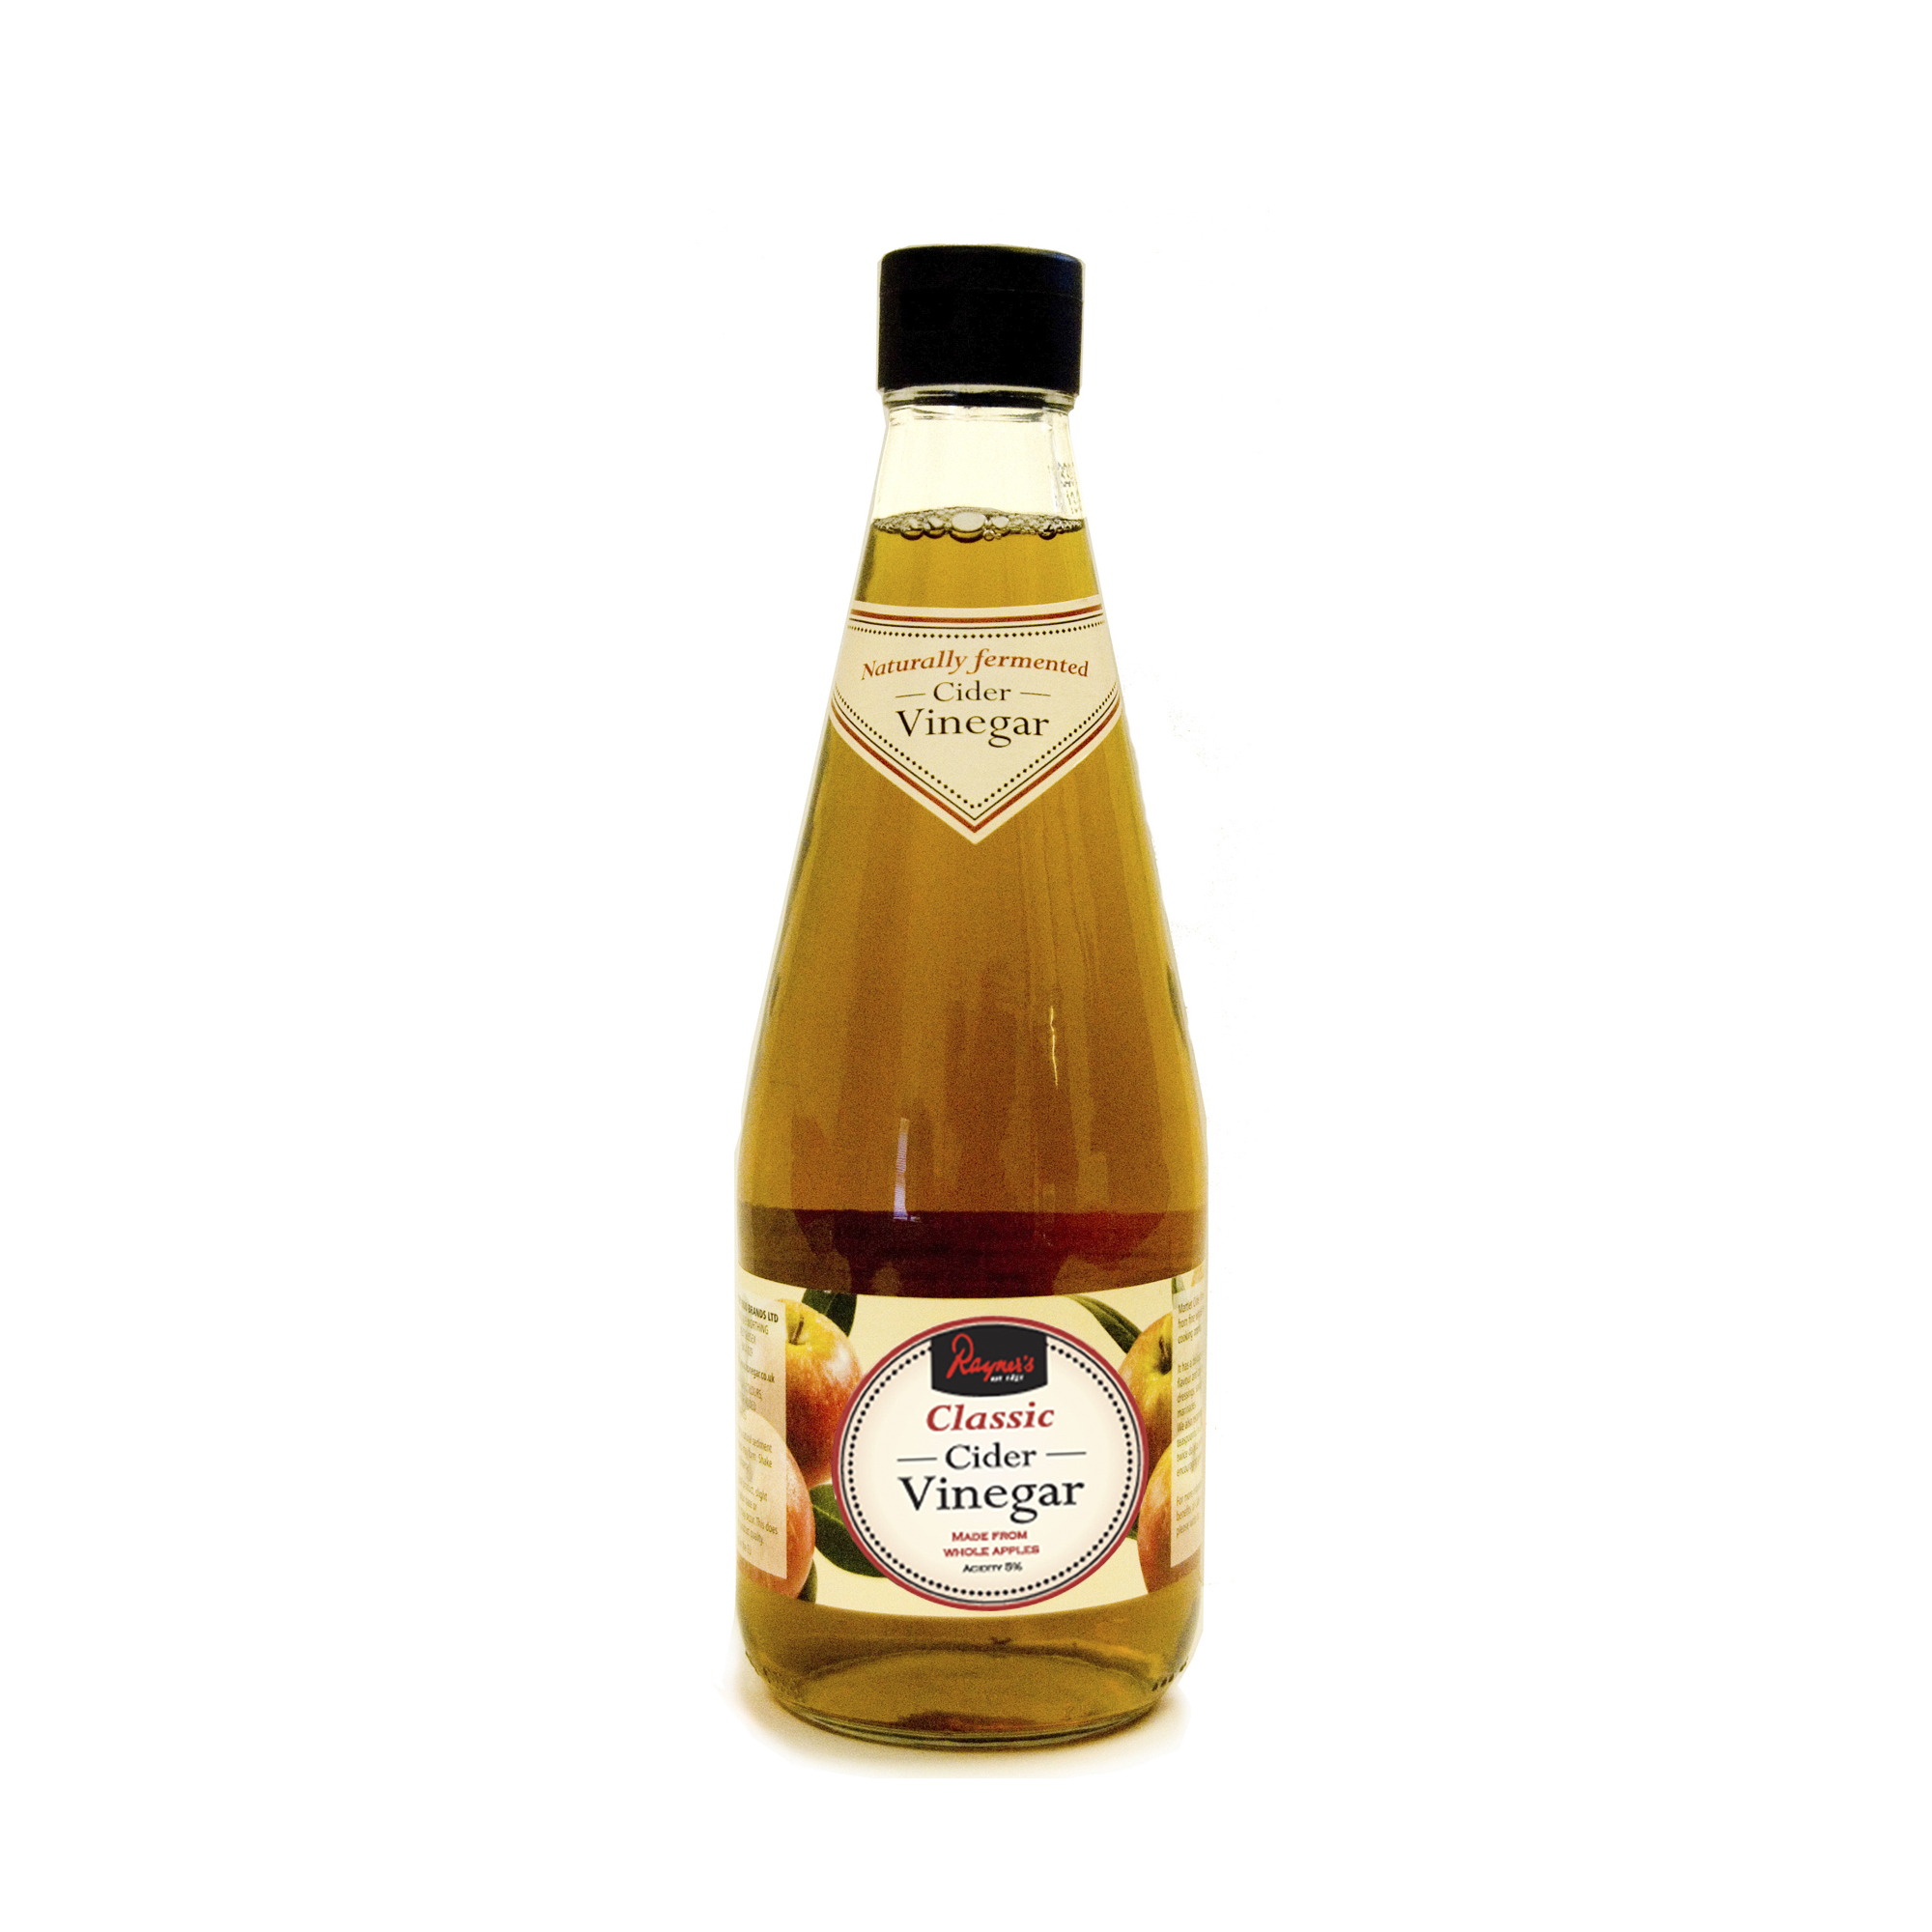 Rayner's Classic Cider Vinegar - Naturally fermented. Rayner's Cider Vinegar is made from whole dessert and cooking apples.500ml and 1000ml